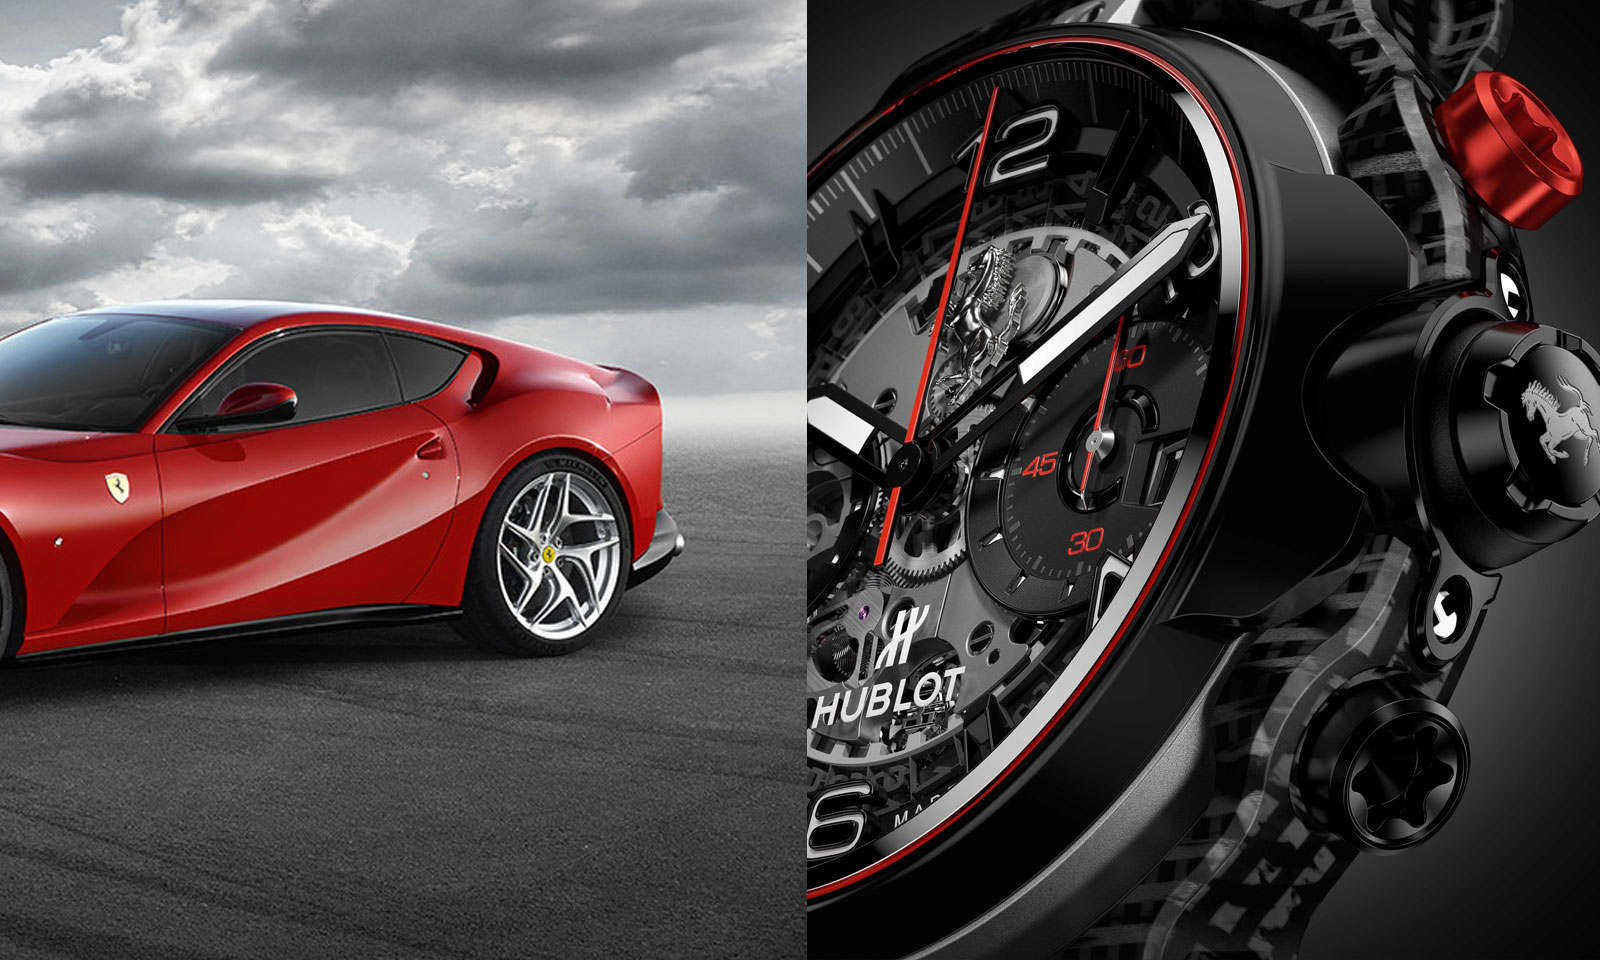 Hublot Ferrari GT watch